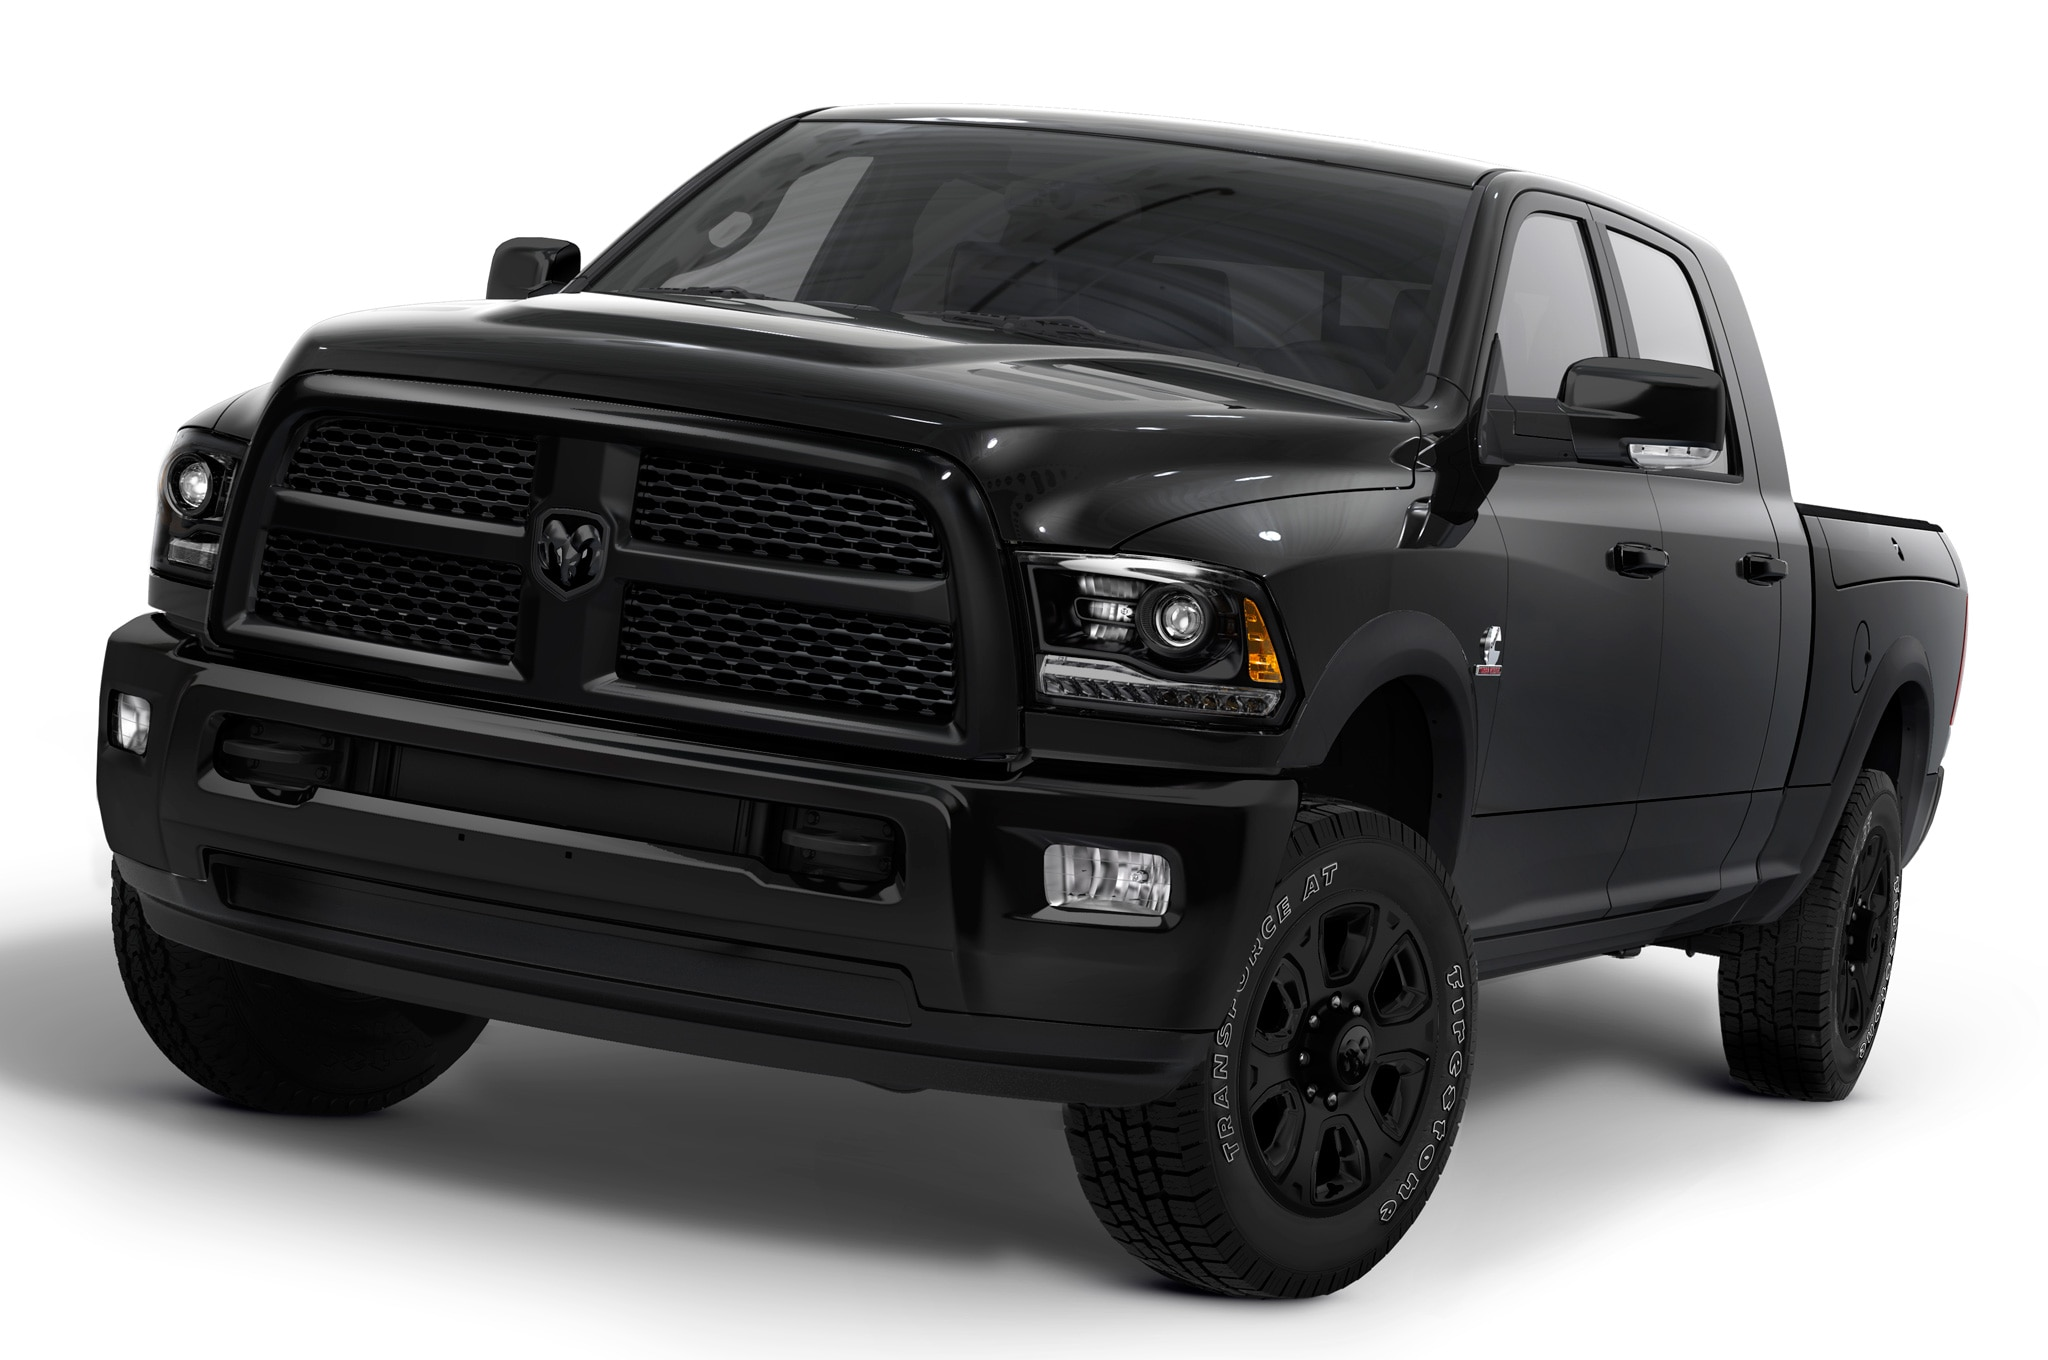 2014 Ram Heavy Duty Black Front View